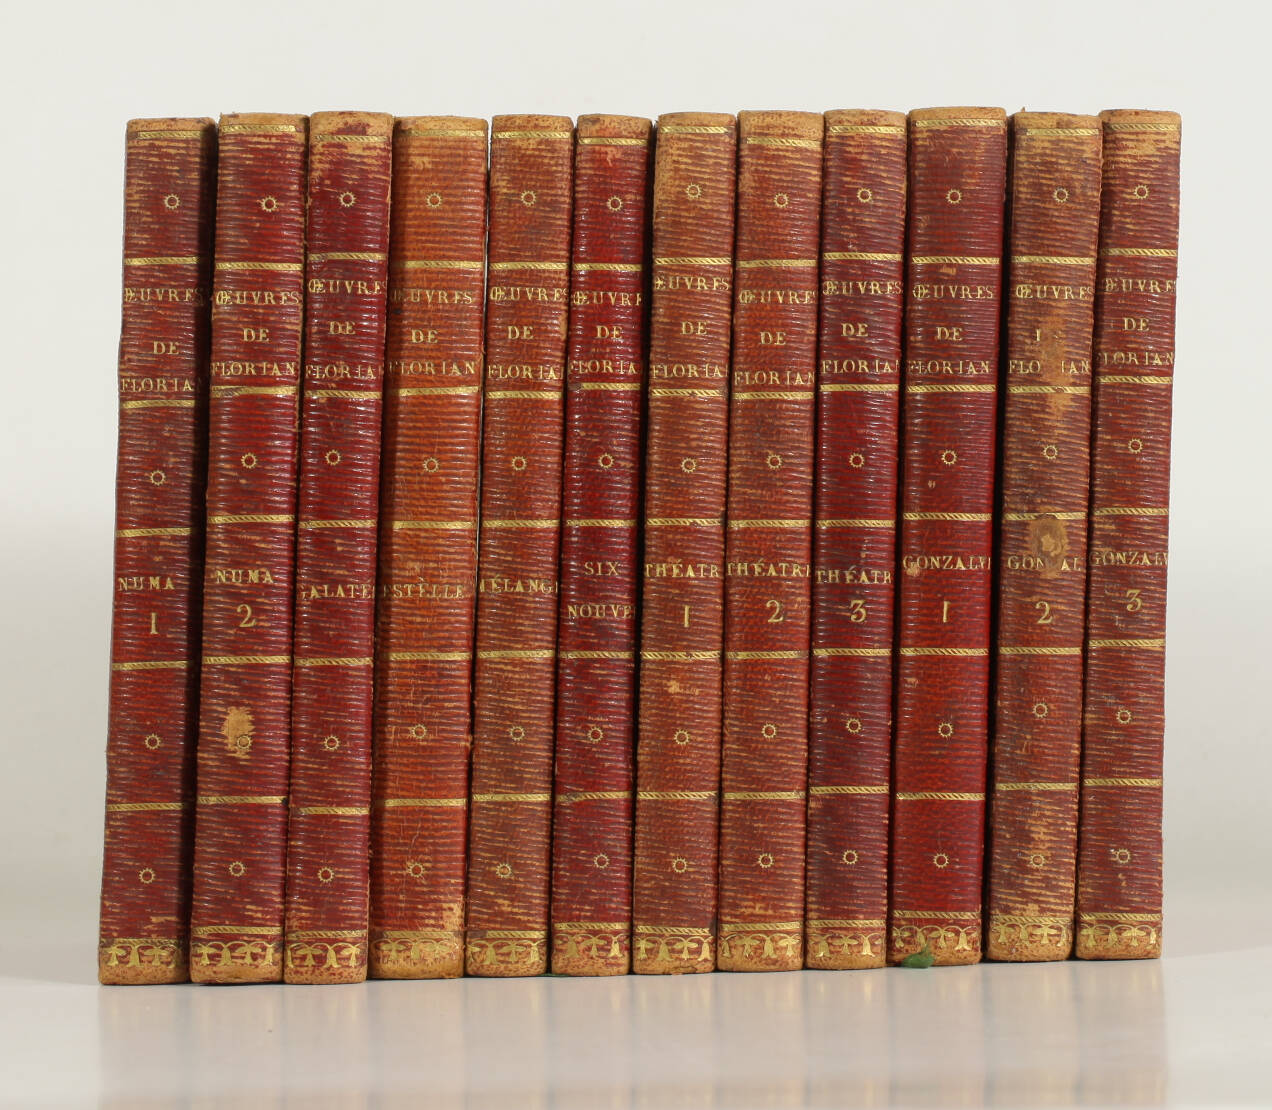 [Petit format] FLORIAN - Oeuvres - An II-III [1794-1795] - 12 volumes in-18 - Photo 0, livre ancien du XVIIIe siècle